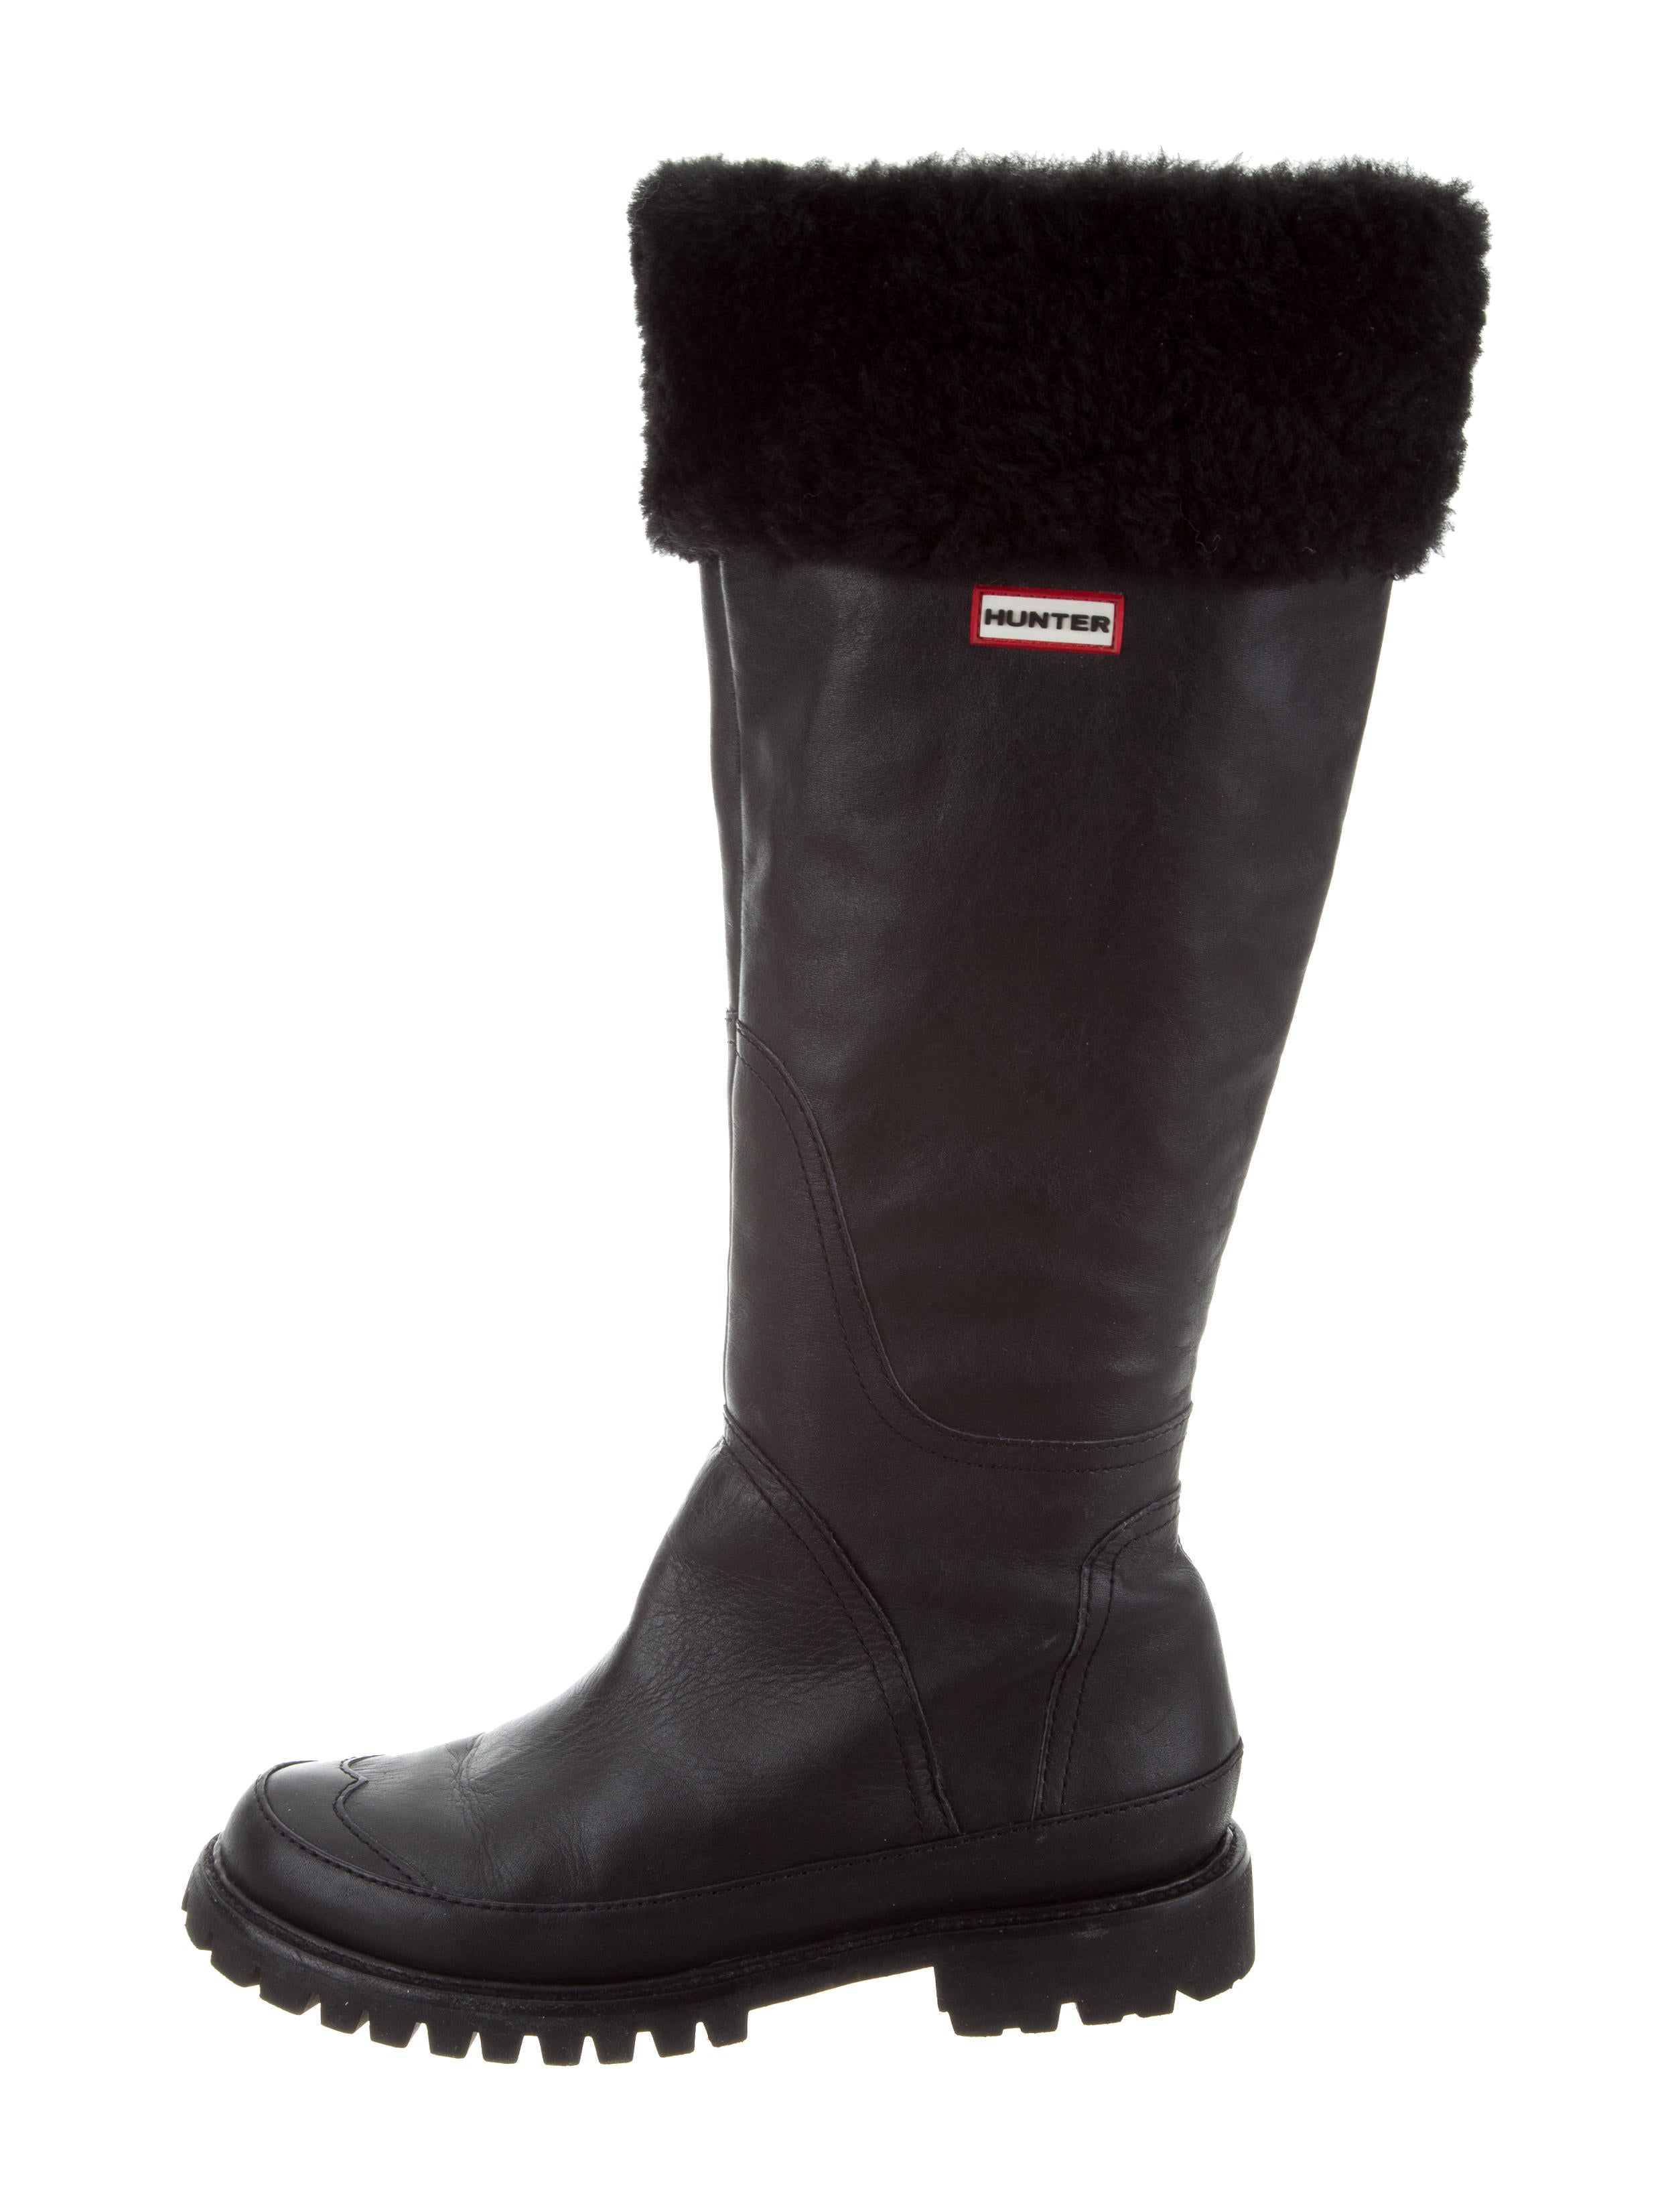 Hunter Shearling-Trimmed Knee-High Boots discount sale online buy cheap exclusive clearance best prices iB0vN